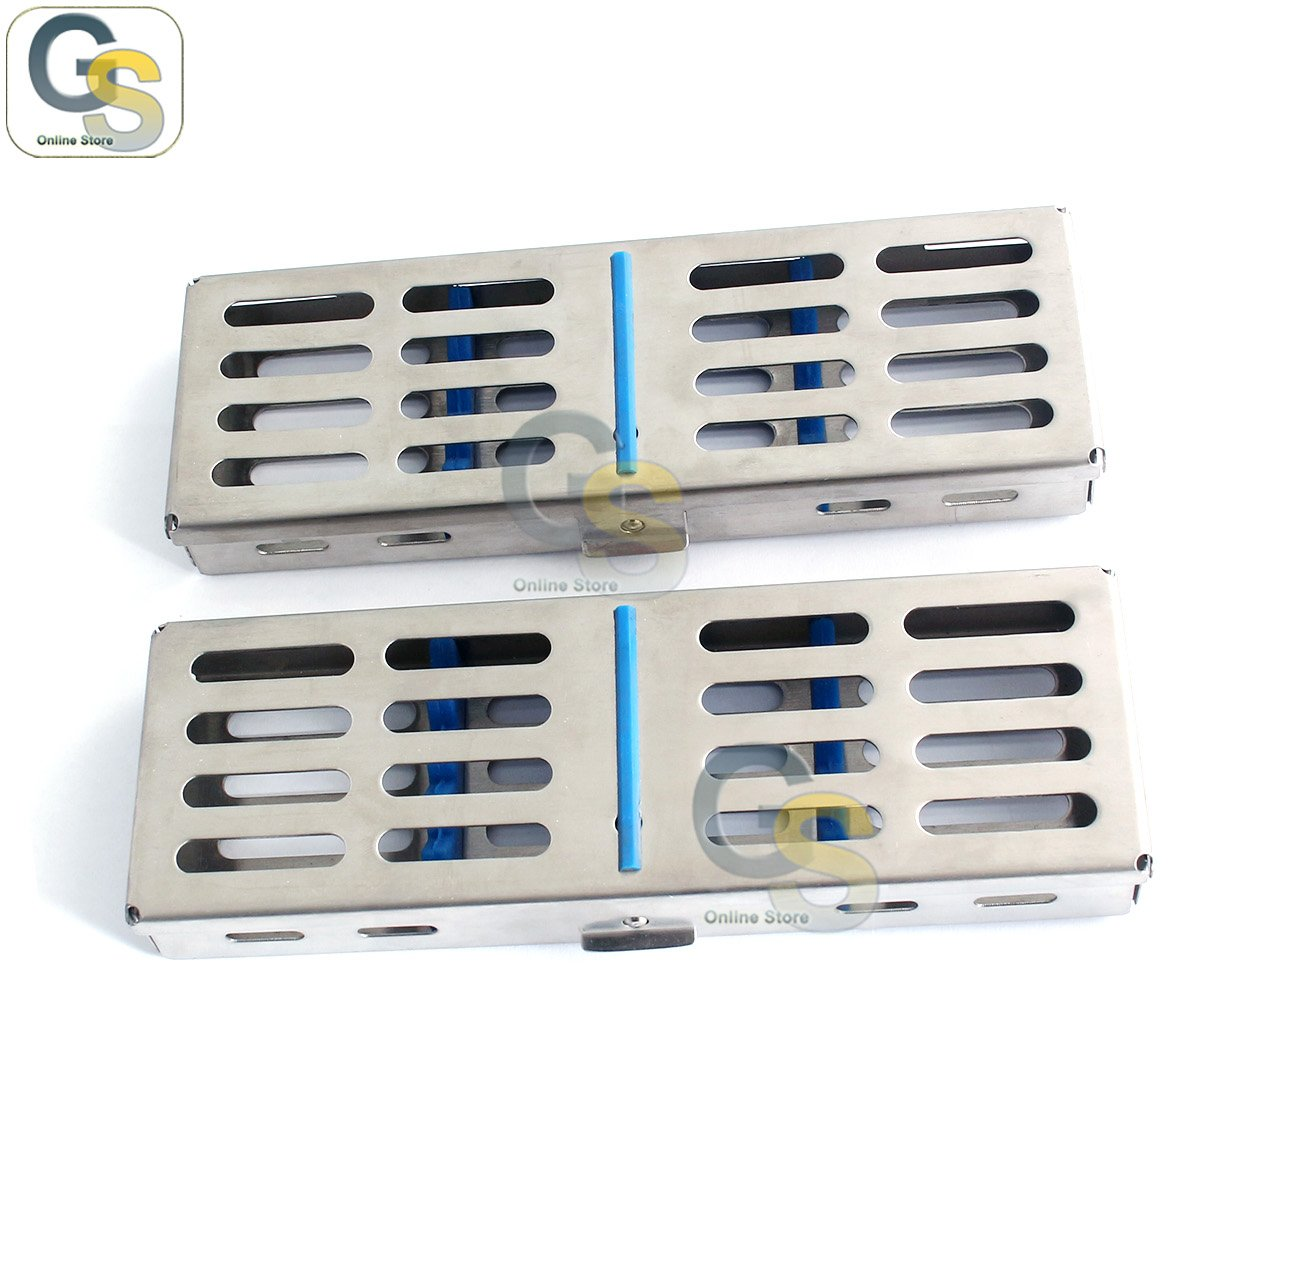 G.S 10 STERILIZATION CASSETTES RACK BOX FOR 5 INSTRUMENTS